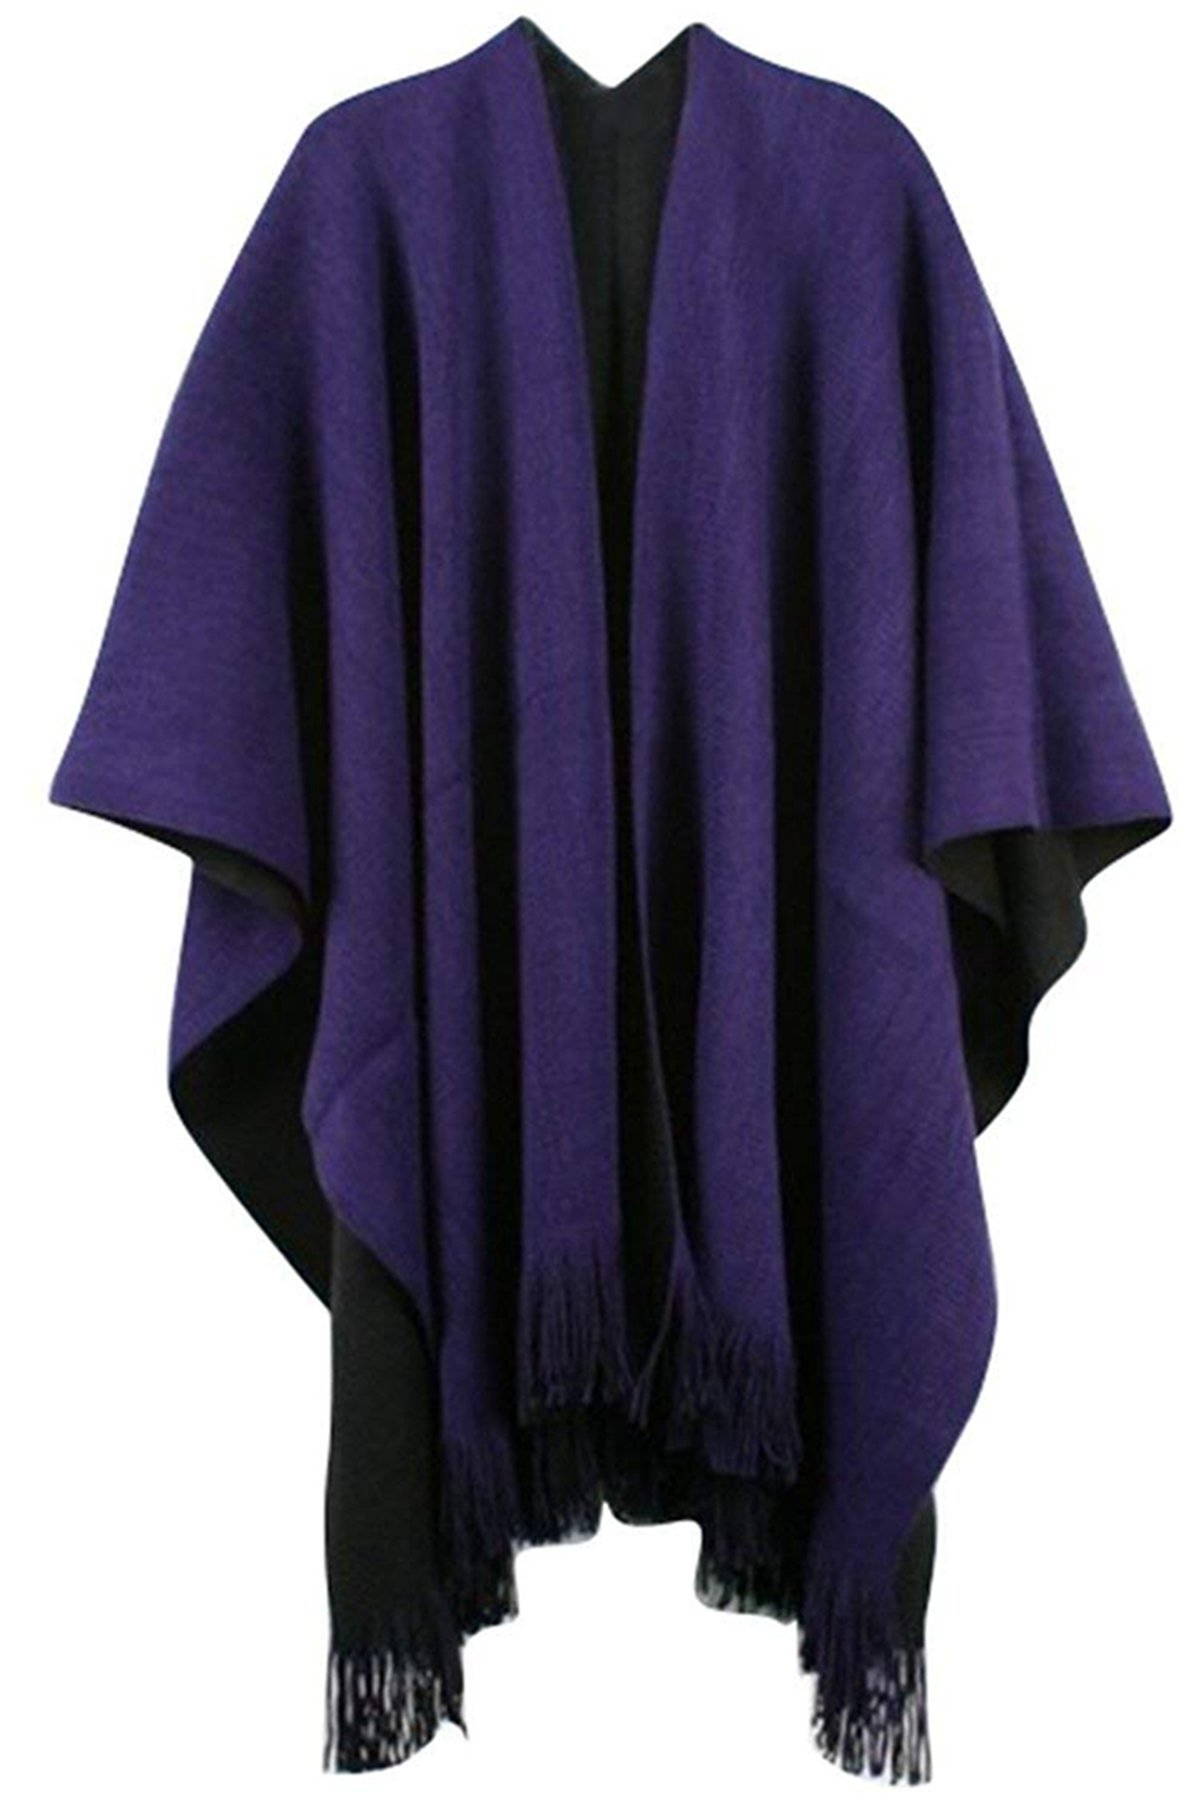 Women Winter Knitted Cashmere Poncho Capes Shawl Cardigans Sweater Coat (Purple)